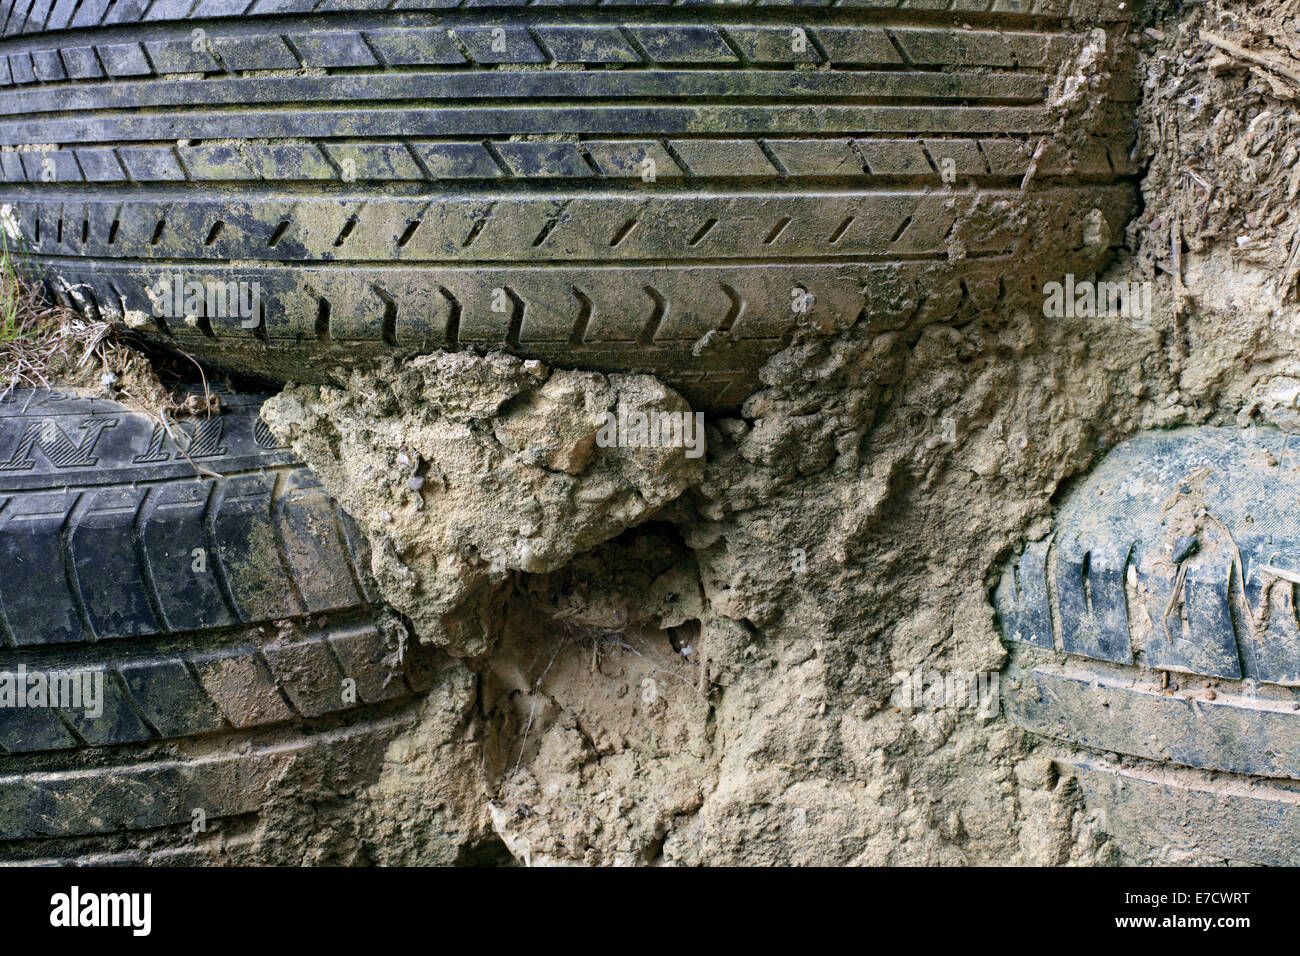 Close up of used vehicle tyres and rammed earth, showing how an earthship wall is constructed. Brighton Earthship, - Stock Image